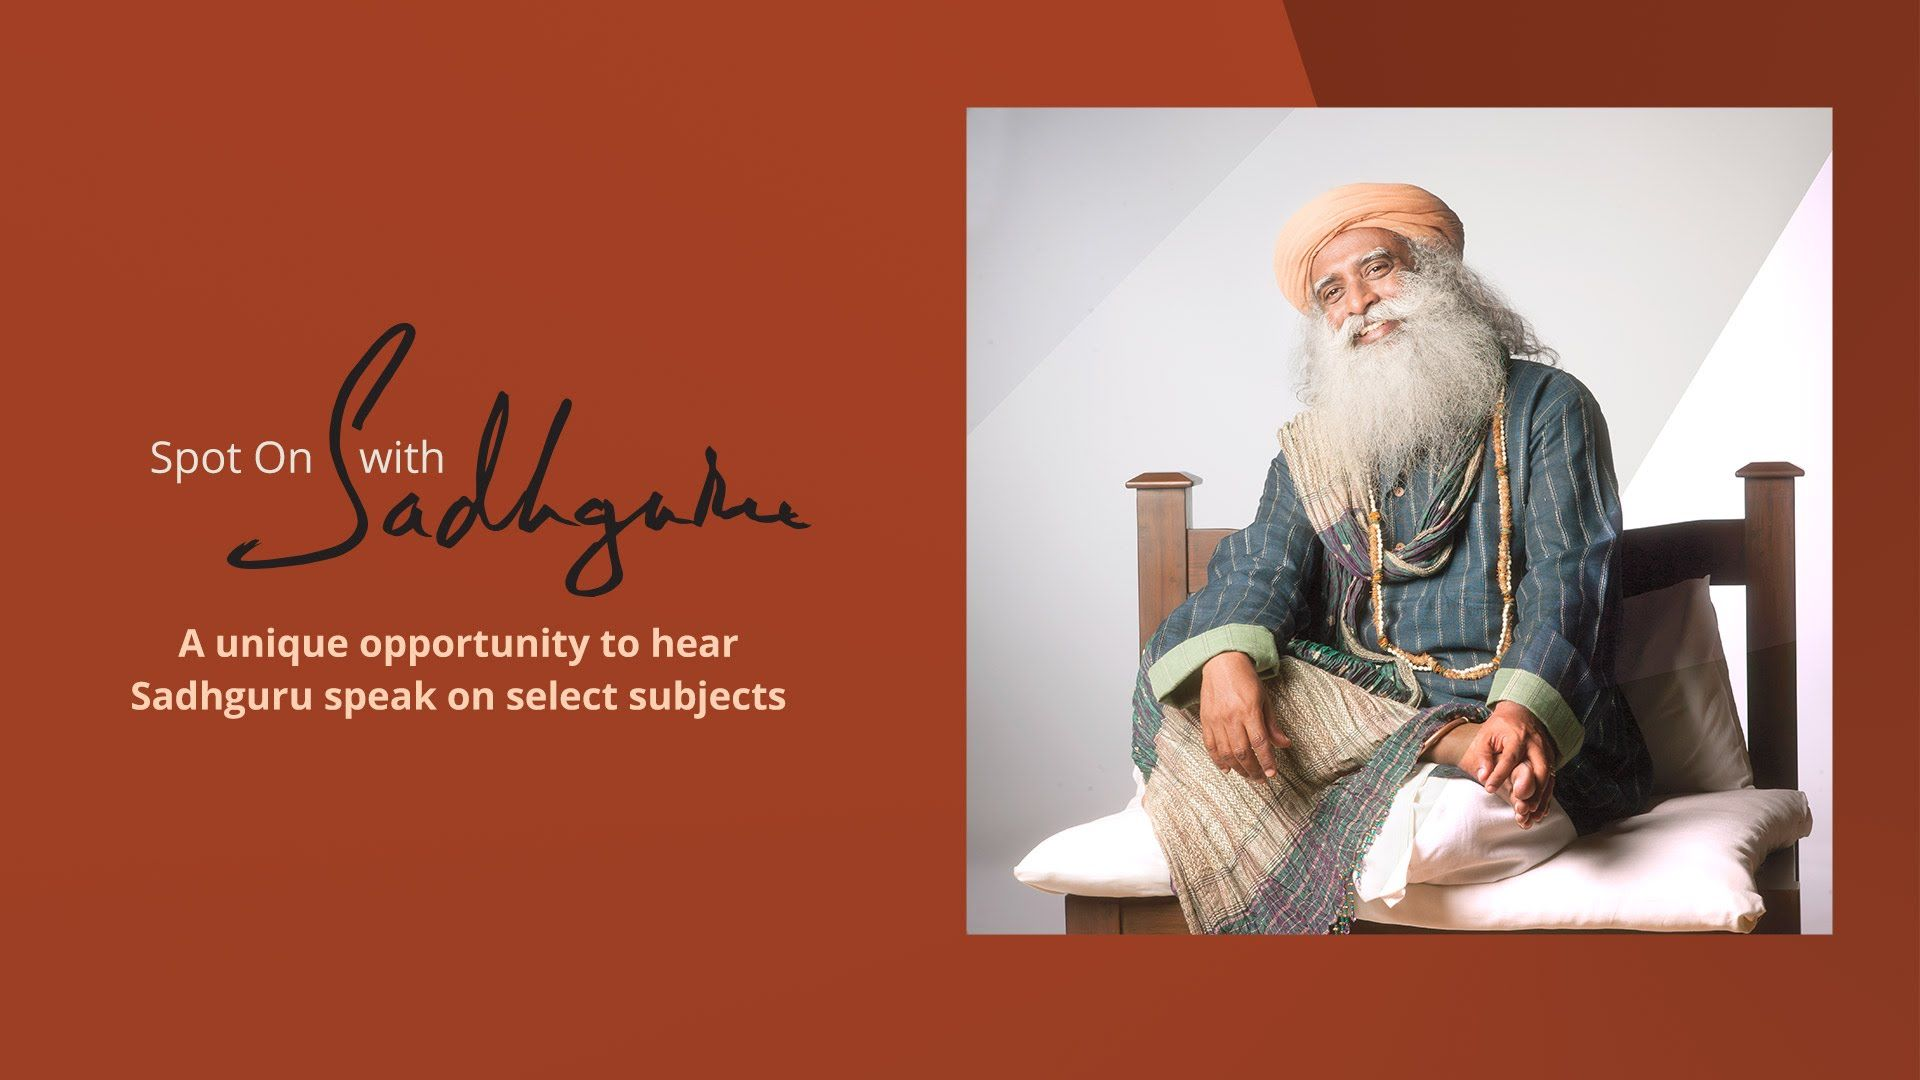 Visit http://spoton.sadhguru.org to subscribe. Register now to join Spot On with Sadhguru – an exclusive series of live monthly online satsangs you can enjoy...